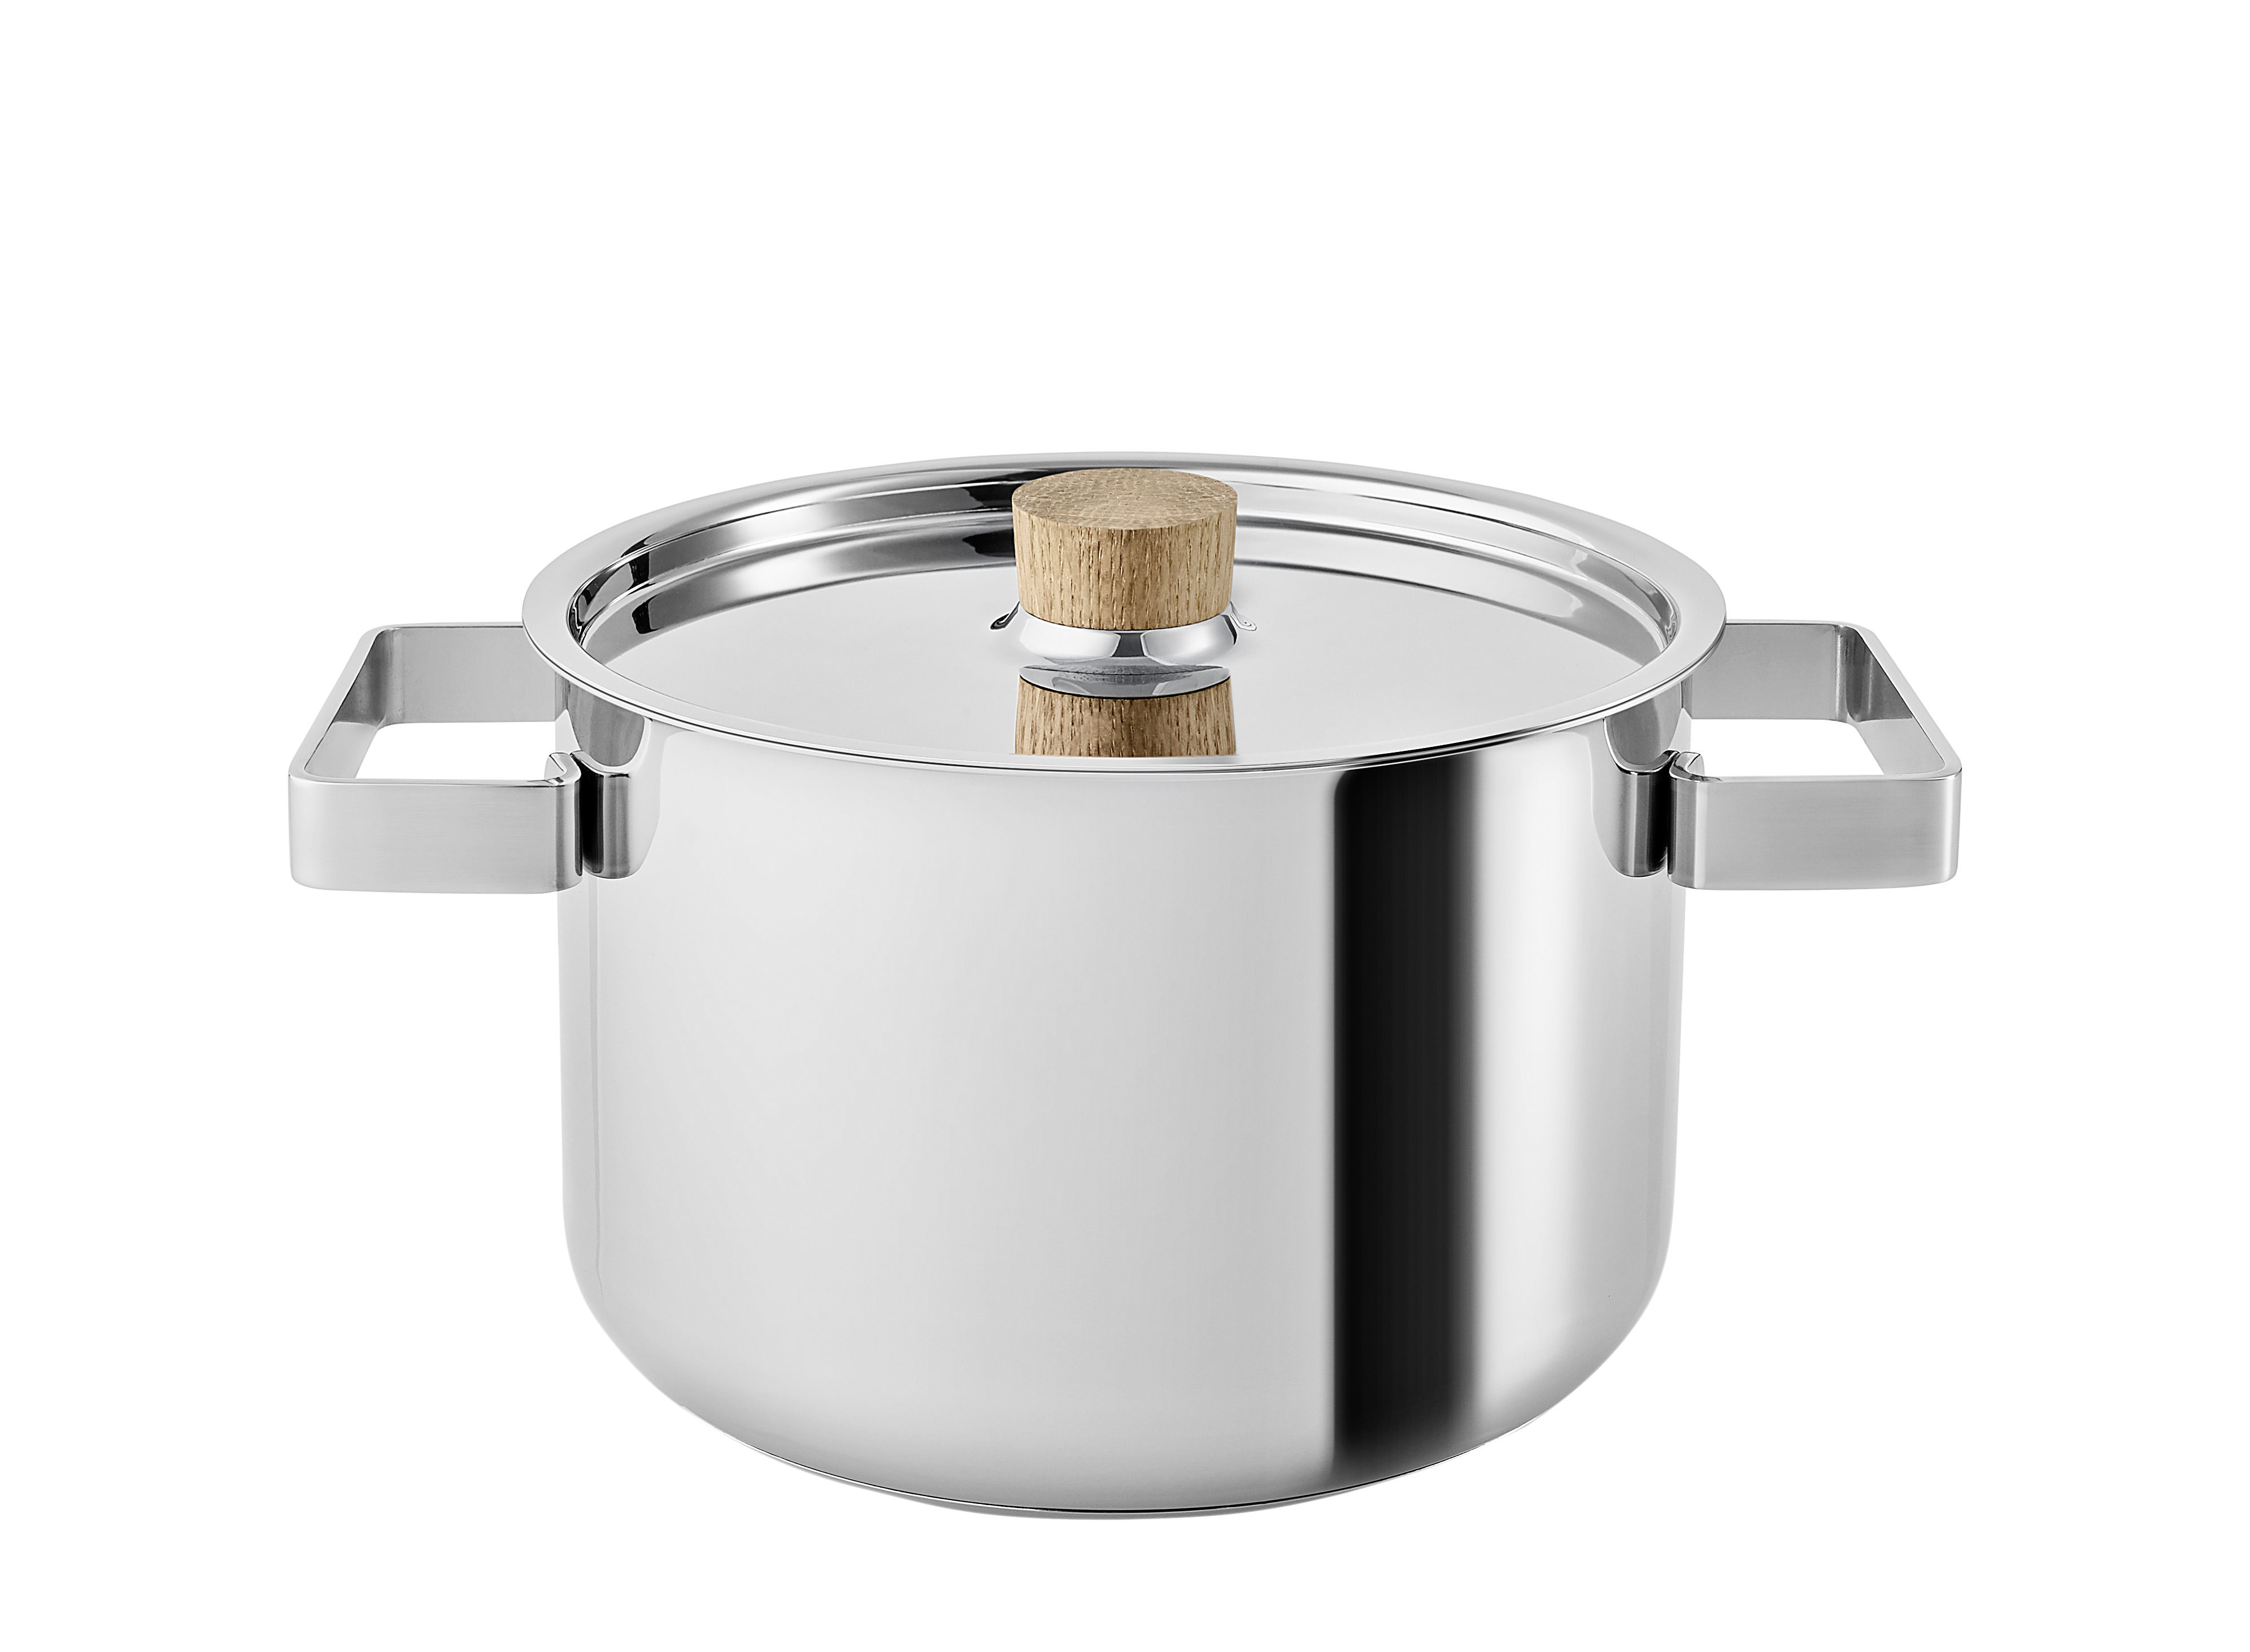 Kitchenware - Pots & Pans - Nordic Kitchen Stew pot - / 3 L - With lid by Eva Solo - Stainless steel / Oak - Oak, Stainless steel